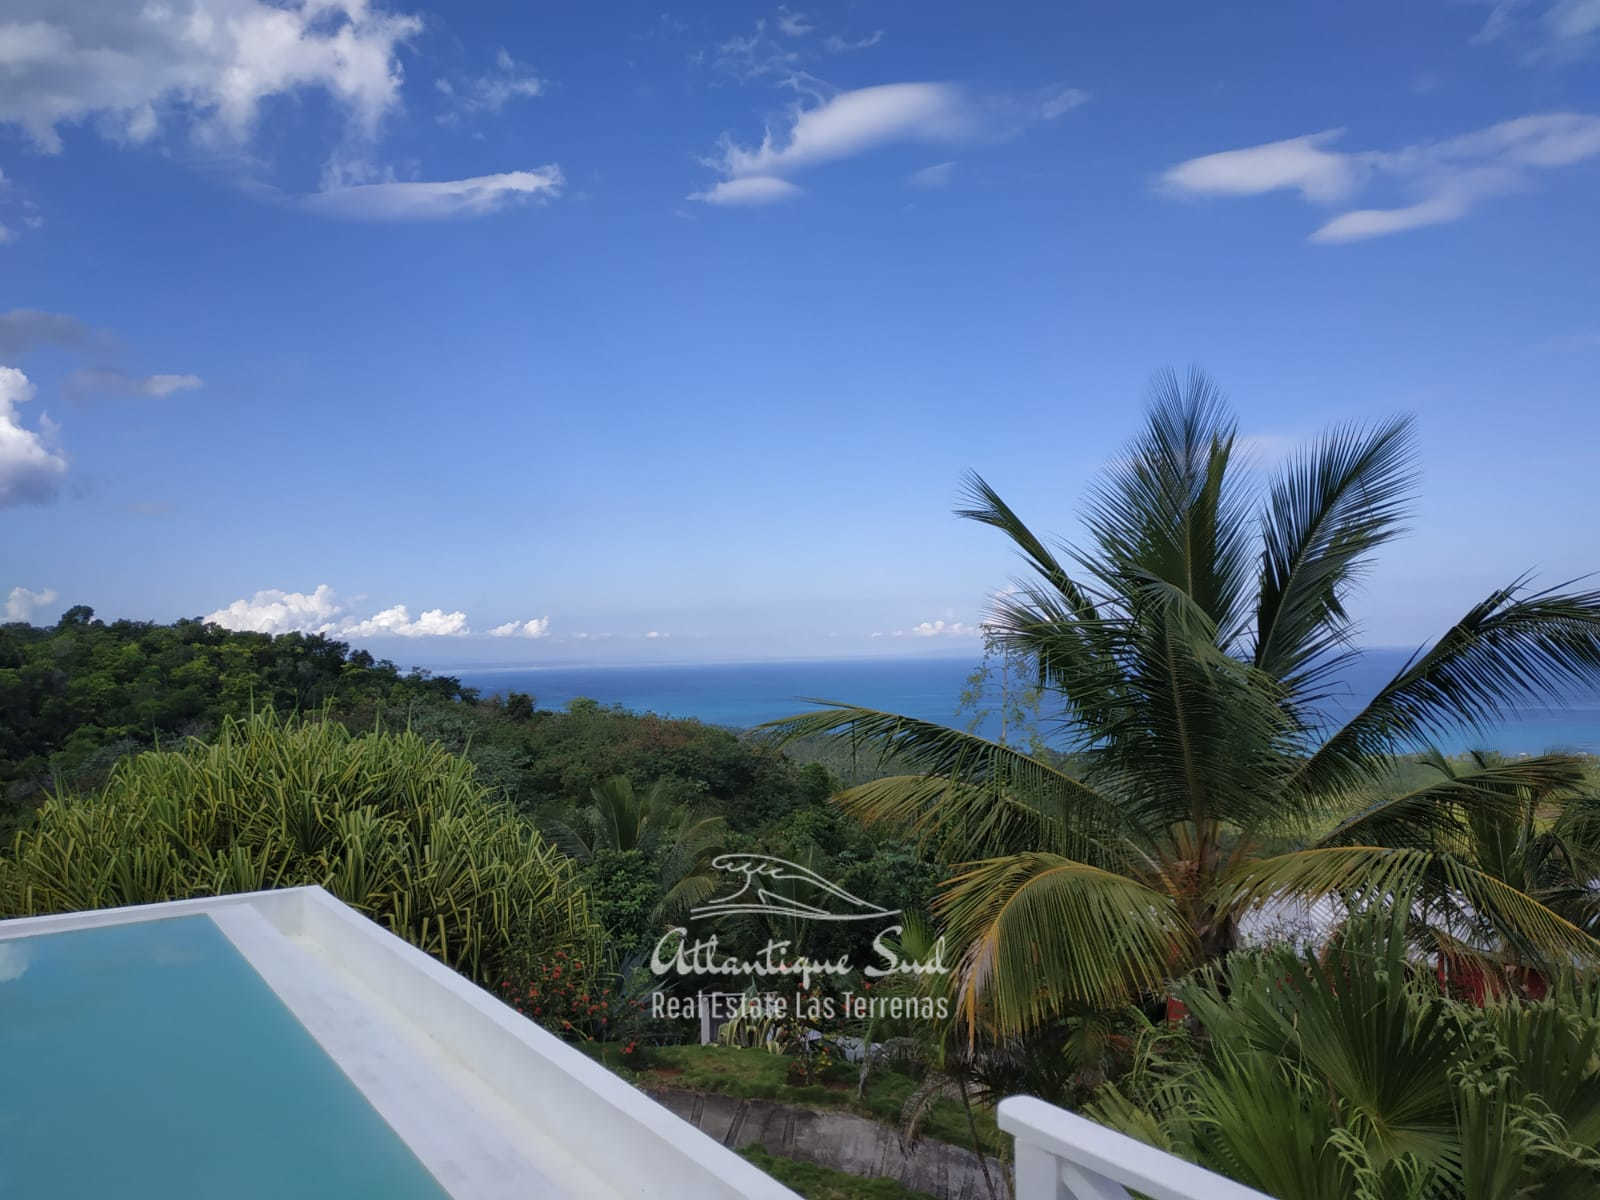 Hillside house for sale in Las terrenas7.jpg